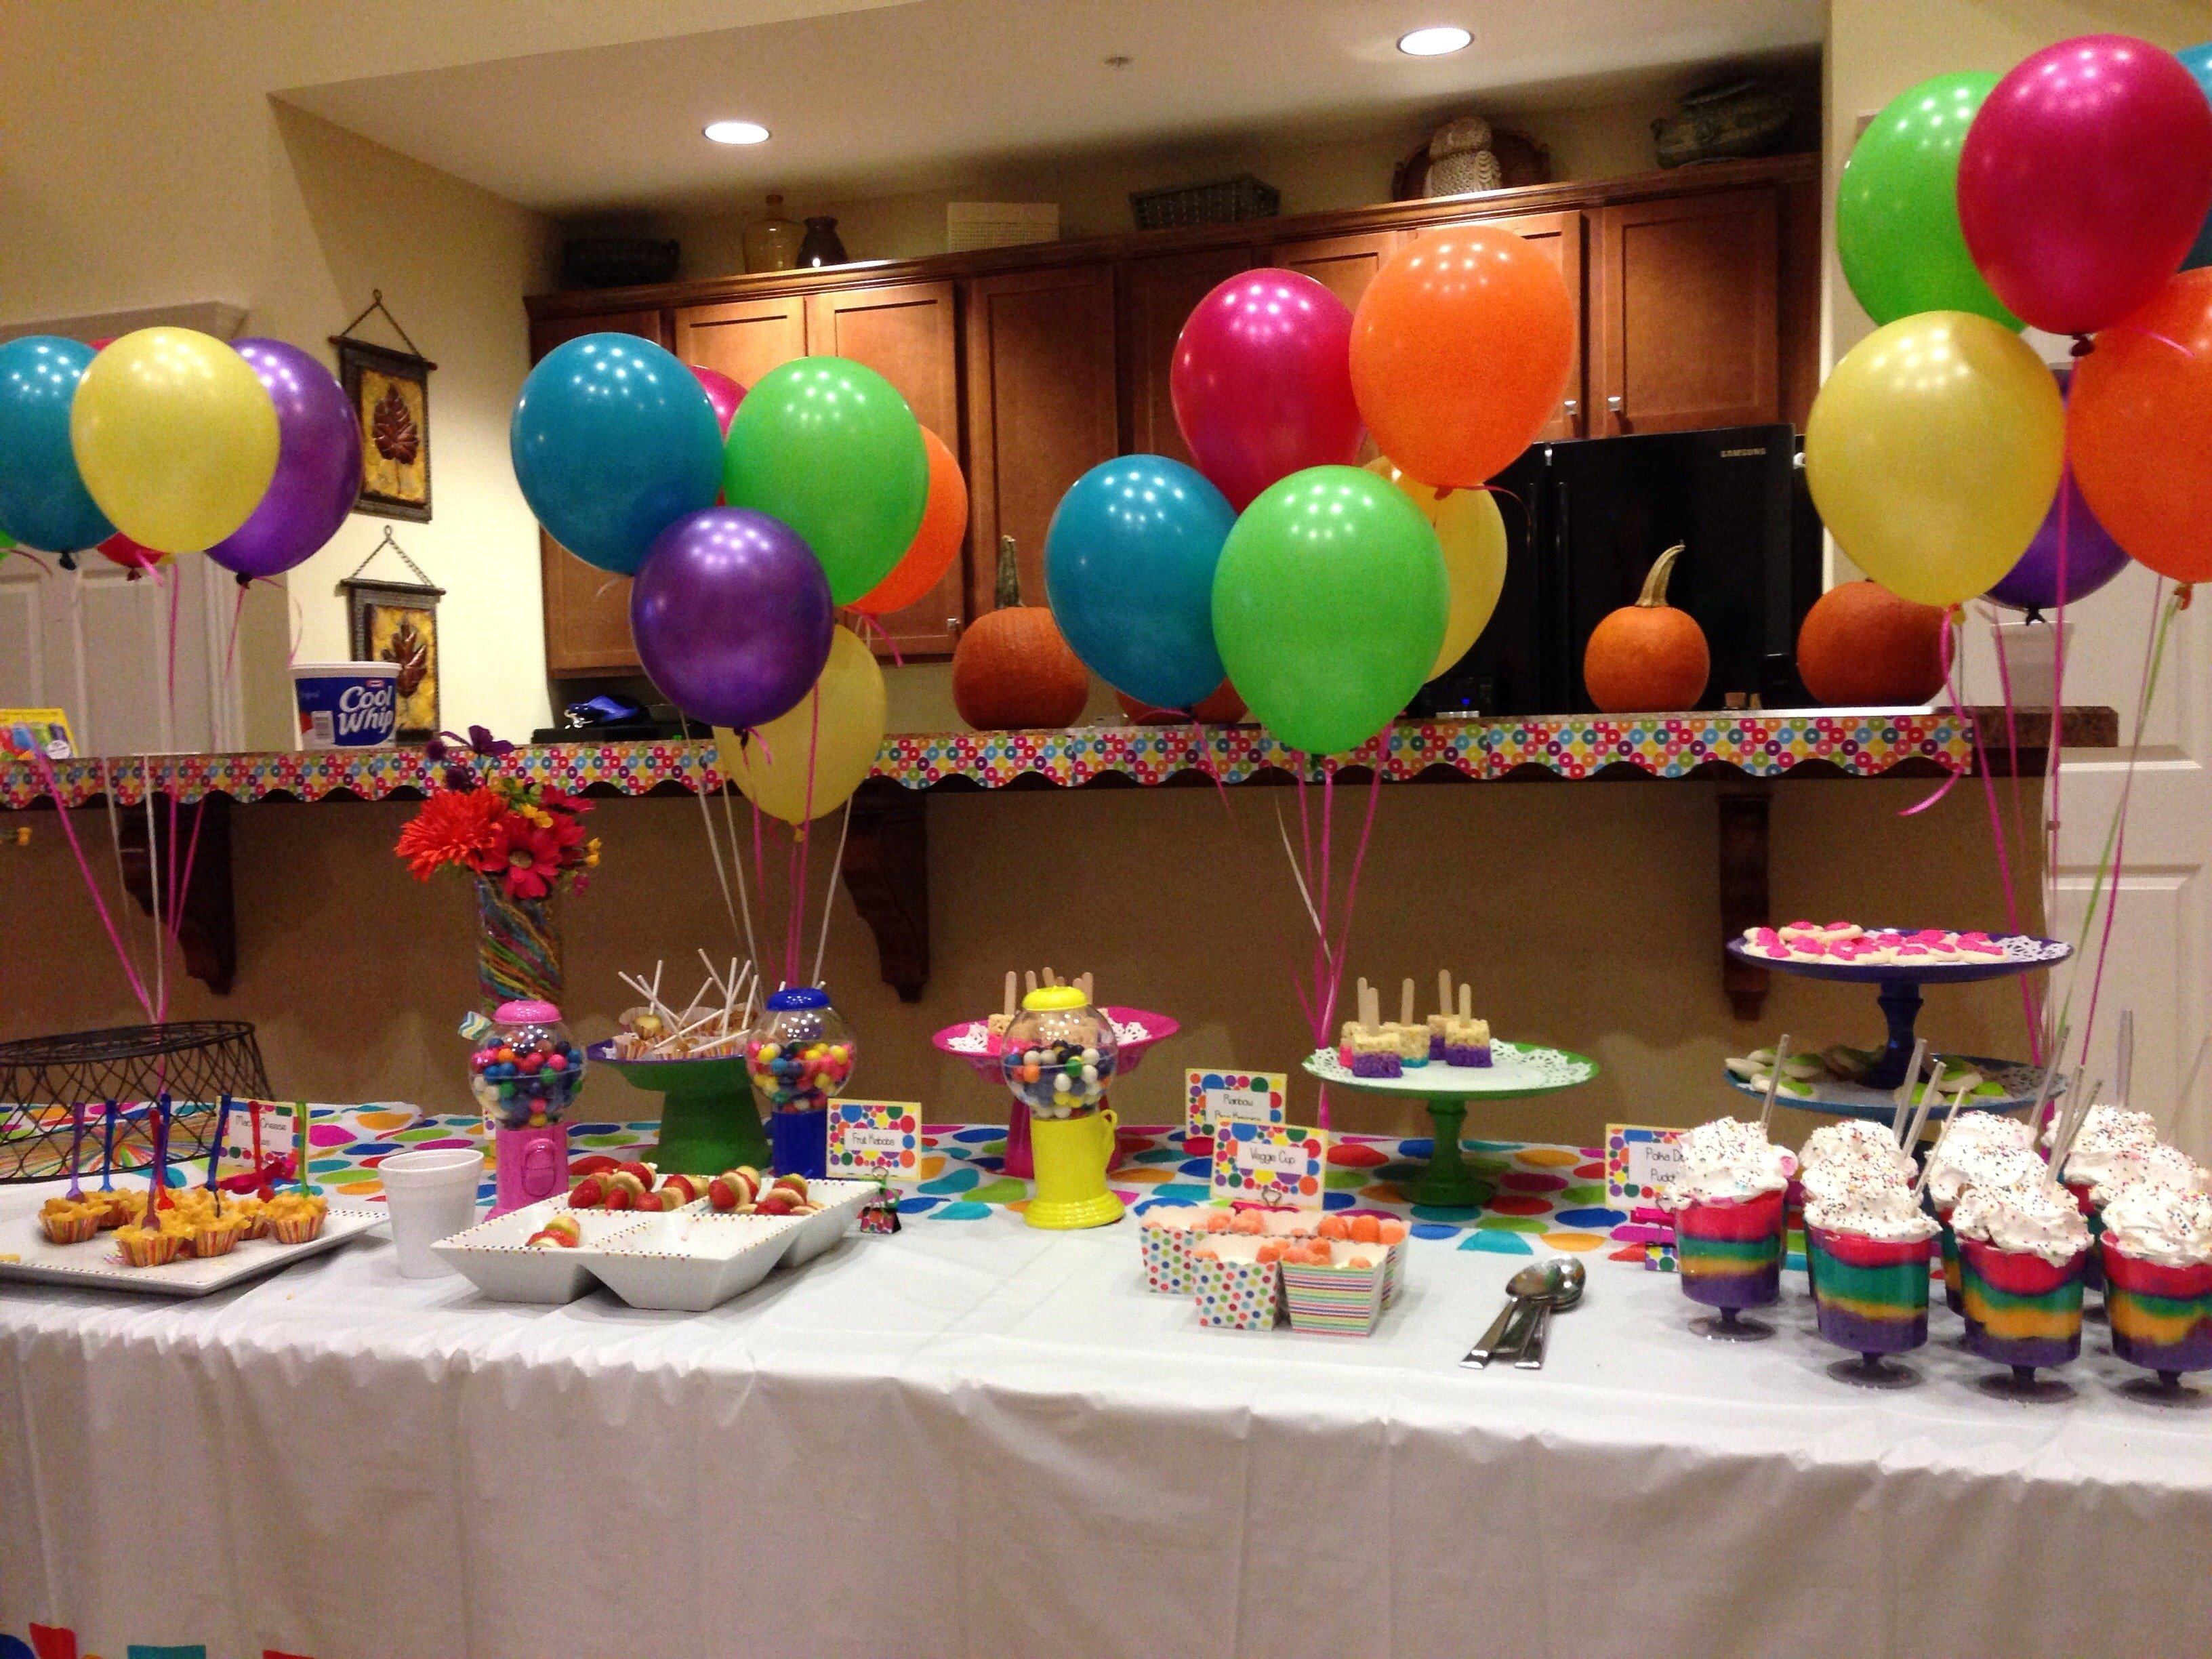 10 Lovable Birthday Party Ideas Raleigh Nc 4 year old birthday party raleigh nc birthday cakes birthday 2020